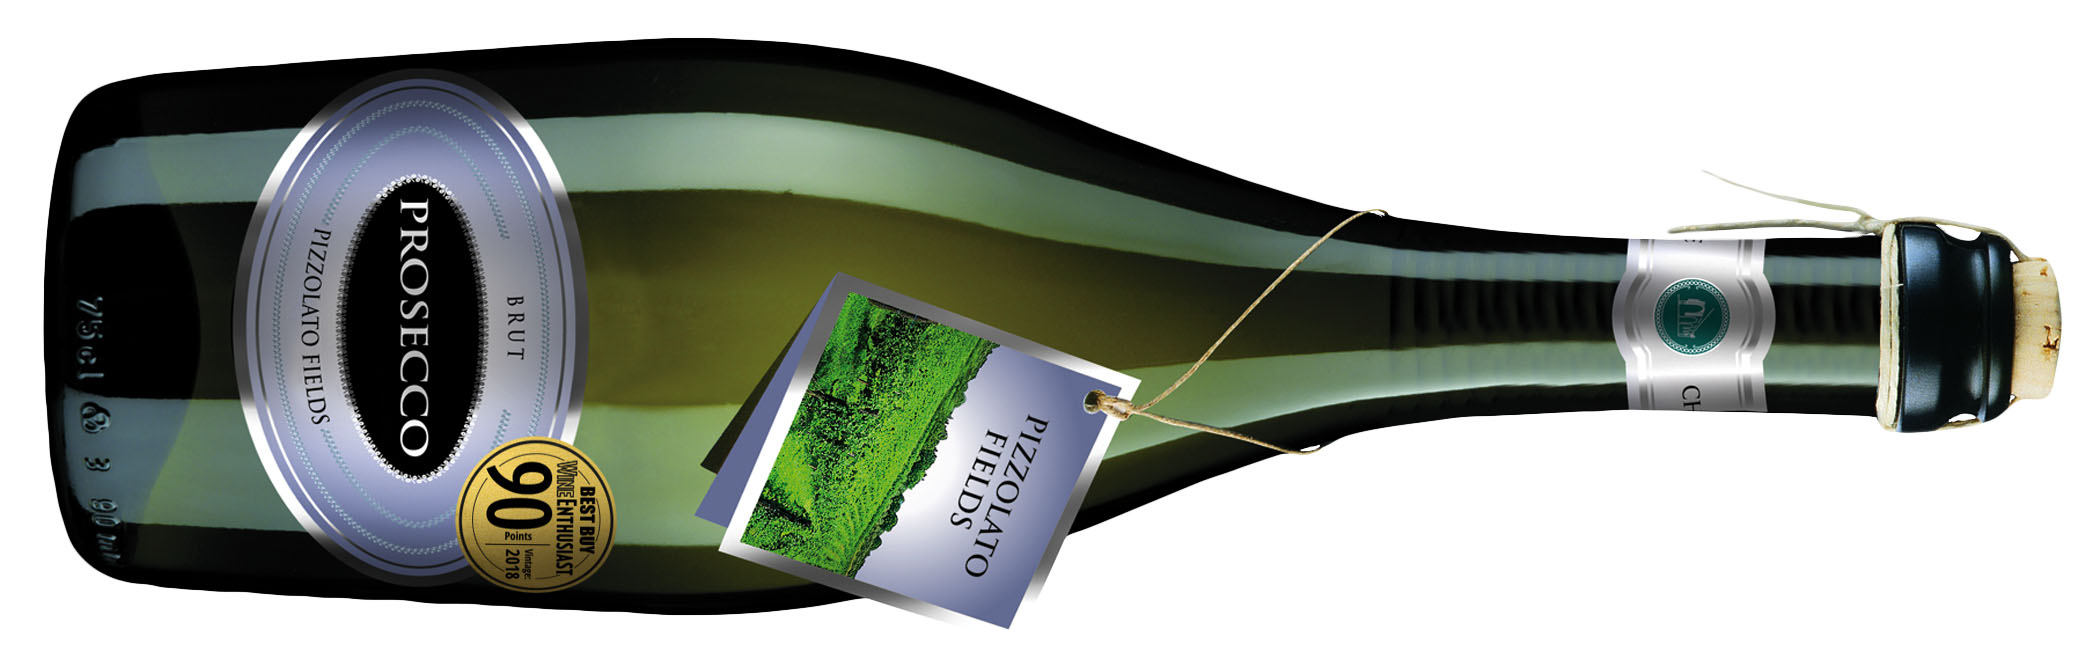 Pizzolato Fields Brut Prosecco Frizzante 90 Point Organic Wines